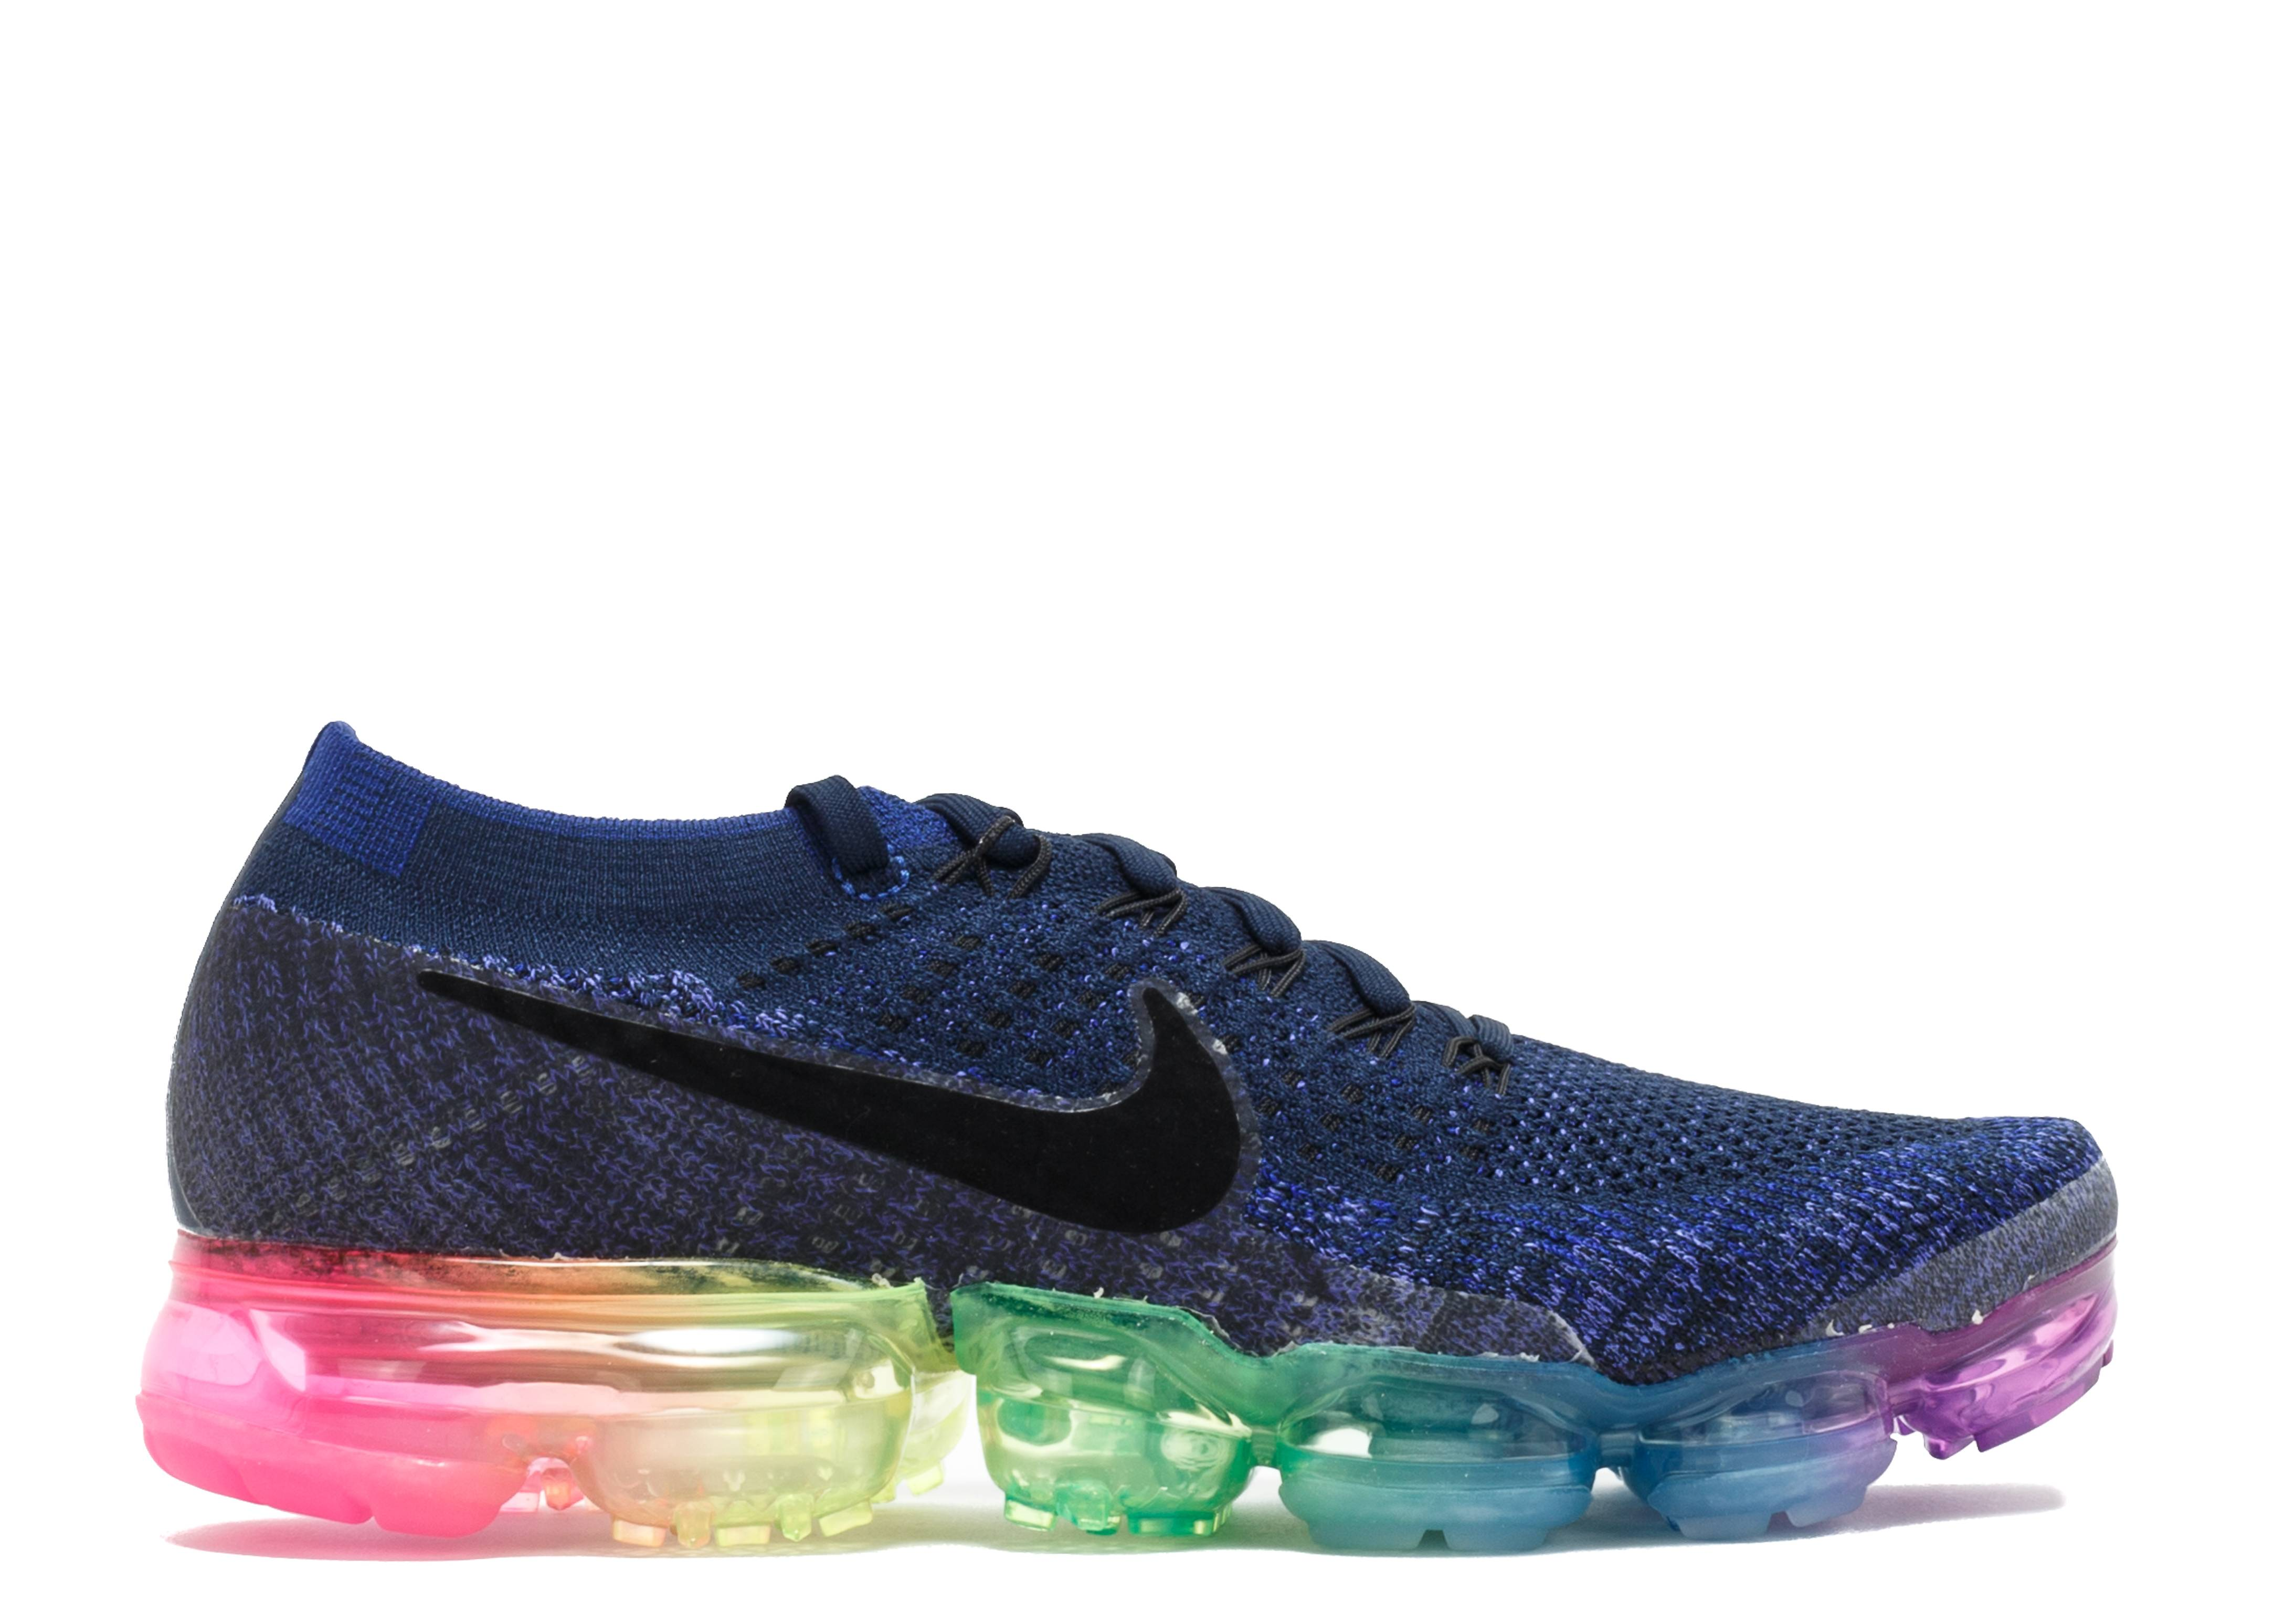 reputable site 96957 593b1 w air vapormax flyknit be true